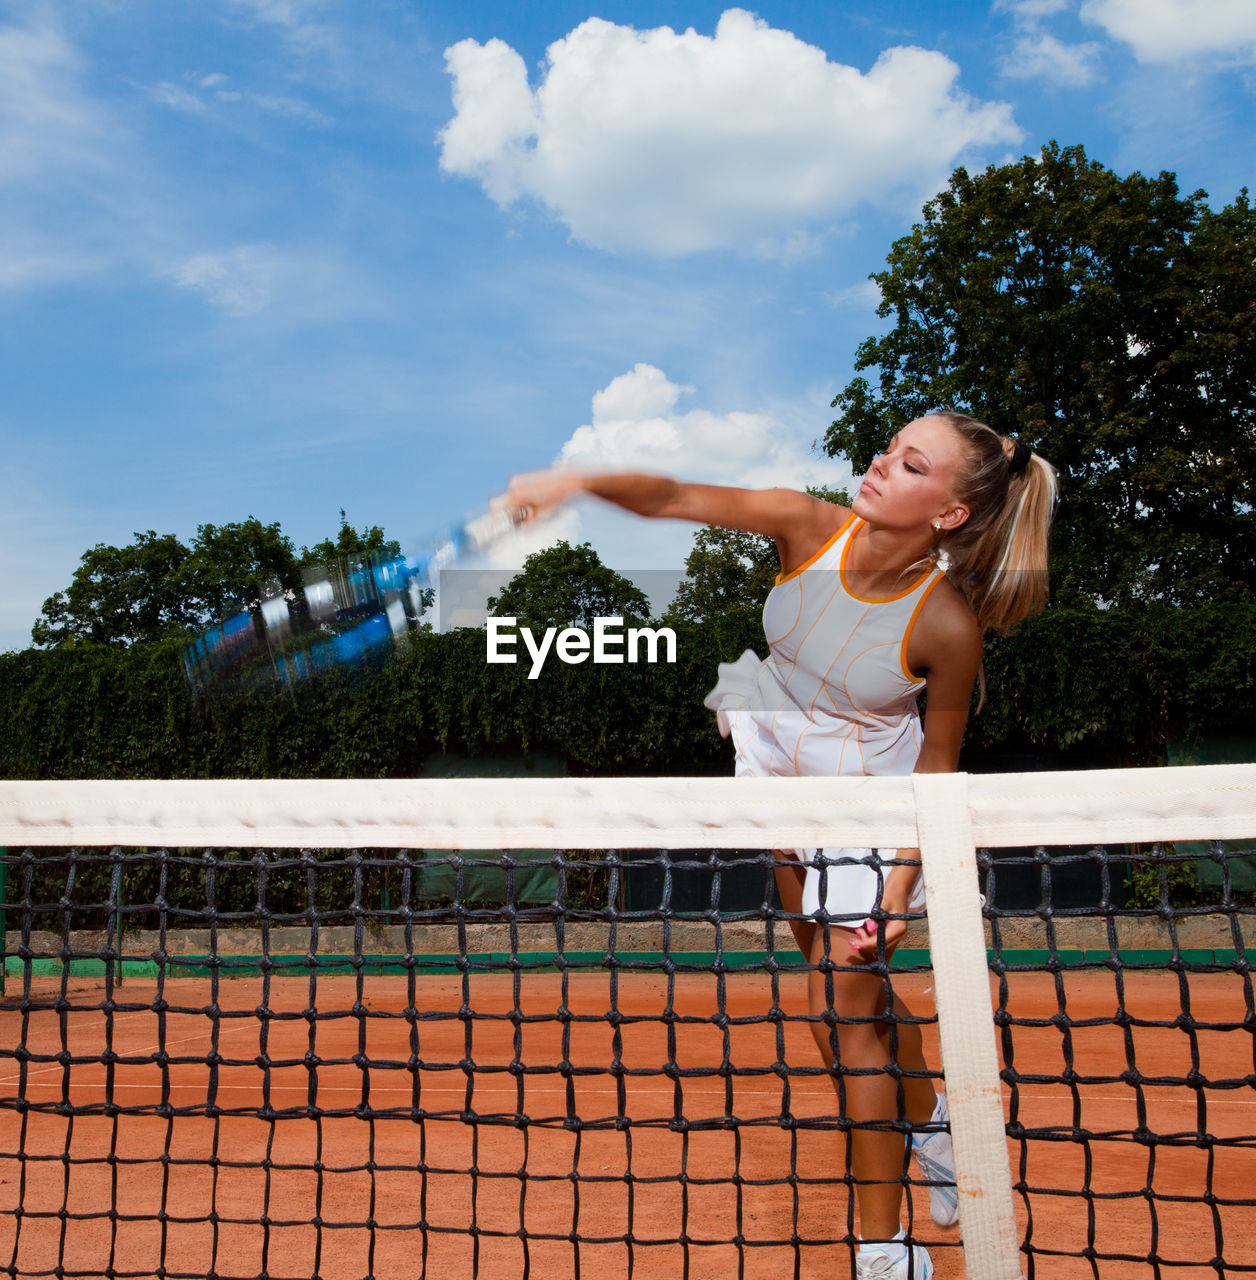 one person, child, lifestyles, blond hair, girls, sport, childhood, women, real people, sky, day, cloud - sky, tree, females, hair, playing, leisure activity, outdoors, tennis racket, hairstyle